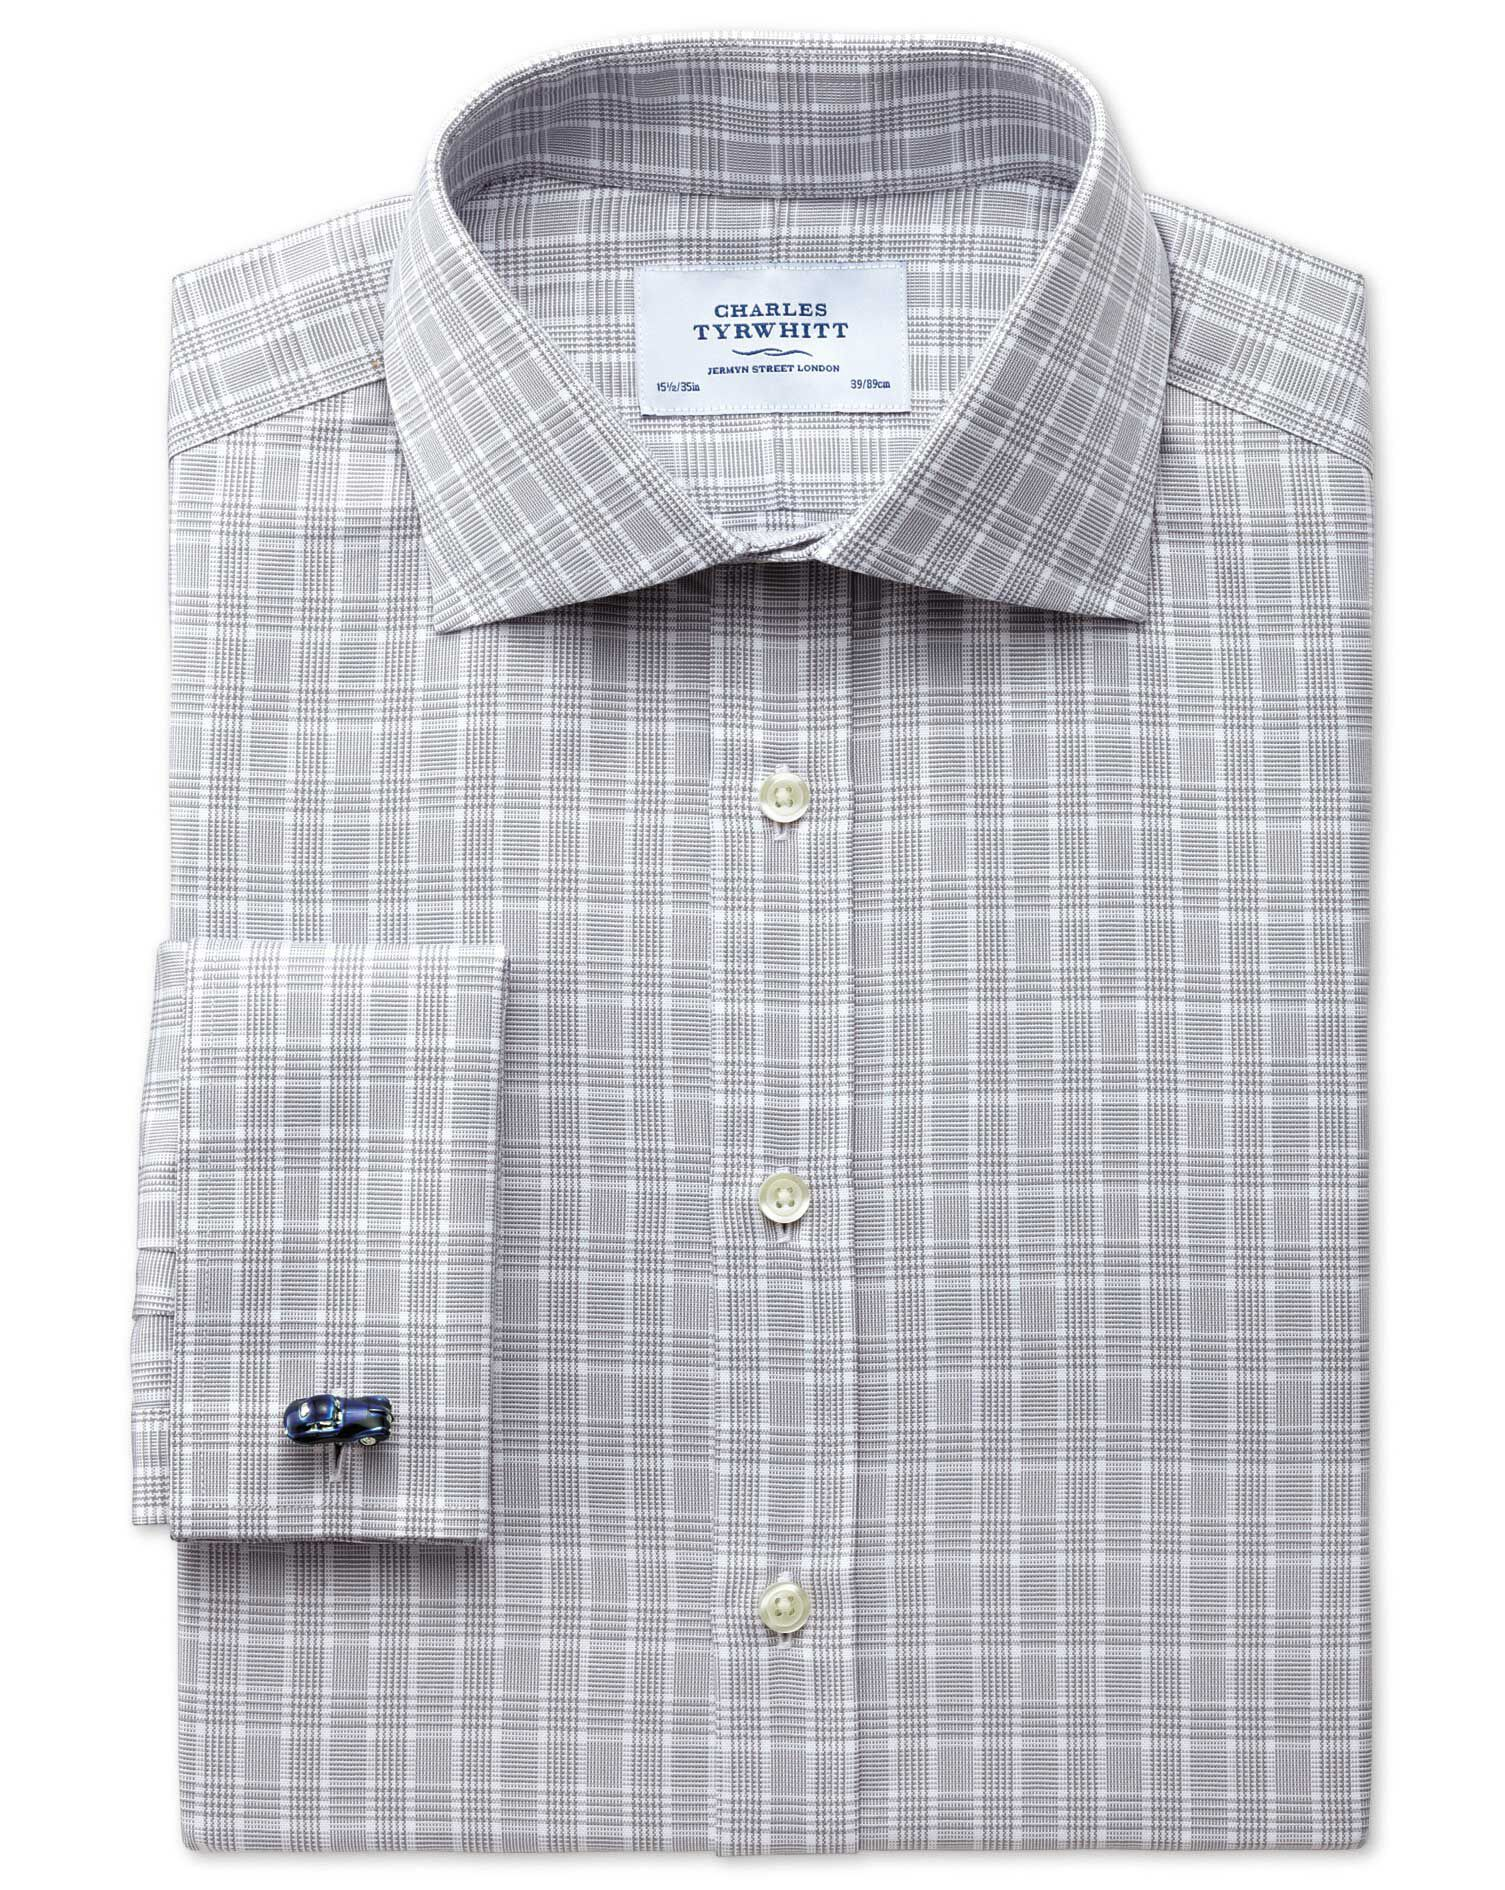 Classic Fit Prince Of Wales Silver Cotton Formal Shirt Double Cuff Size 15.5/37 by Charles Tyrwhitt